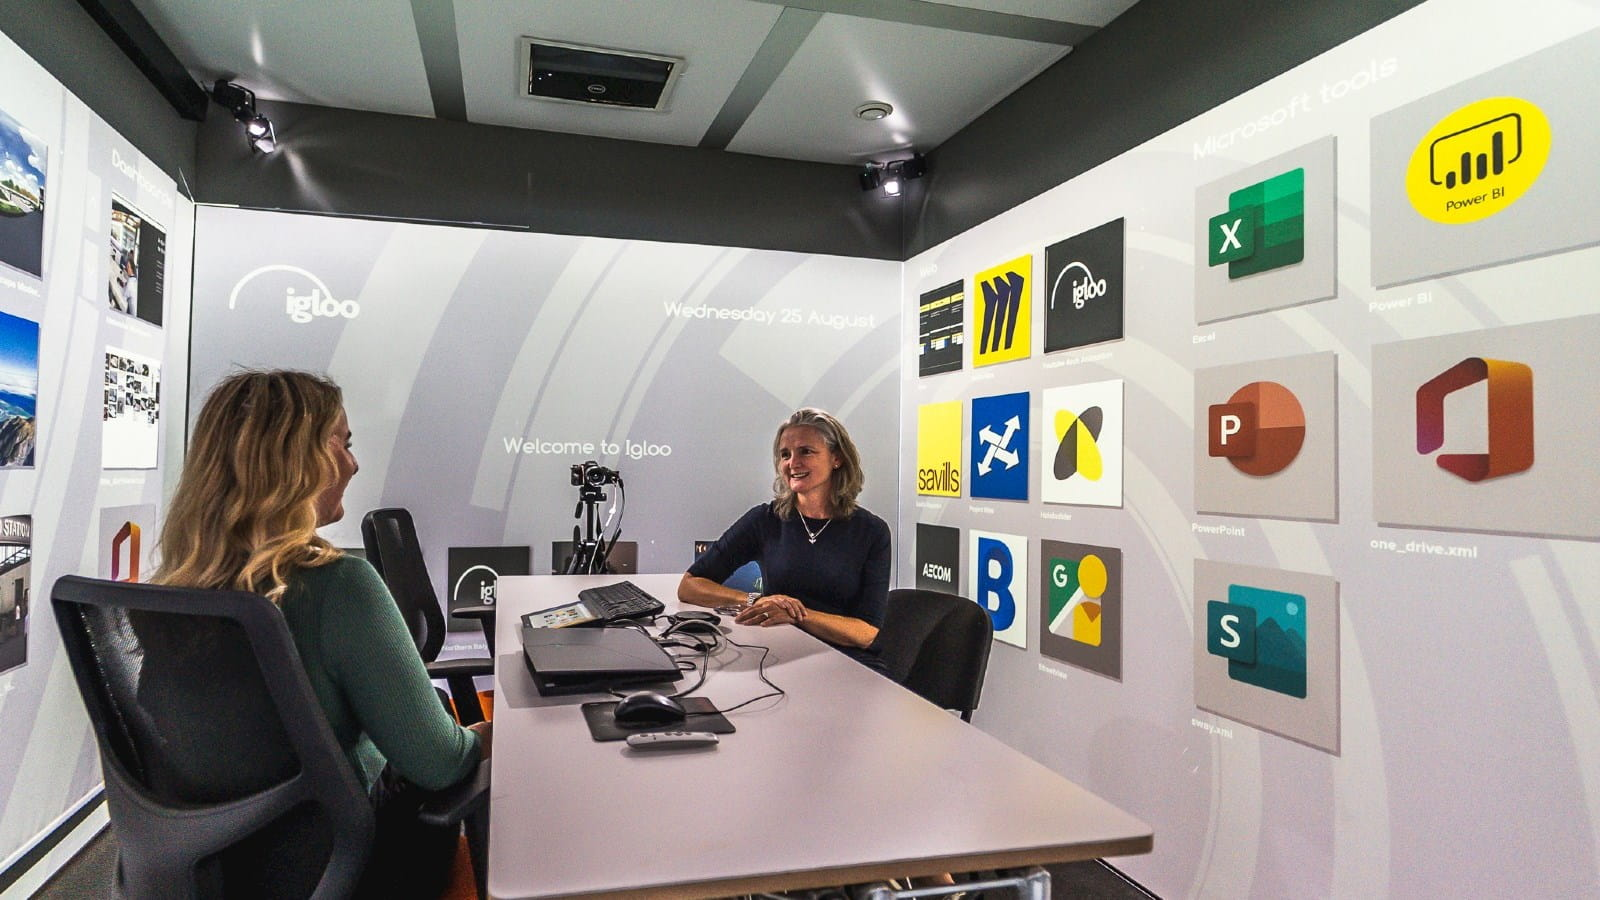 Igloo Vision's immersive virtual learning space provides 360° projection and the ability to simulate training.